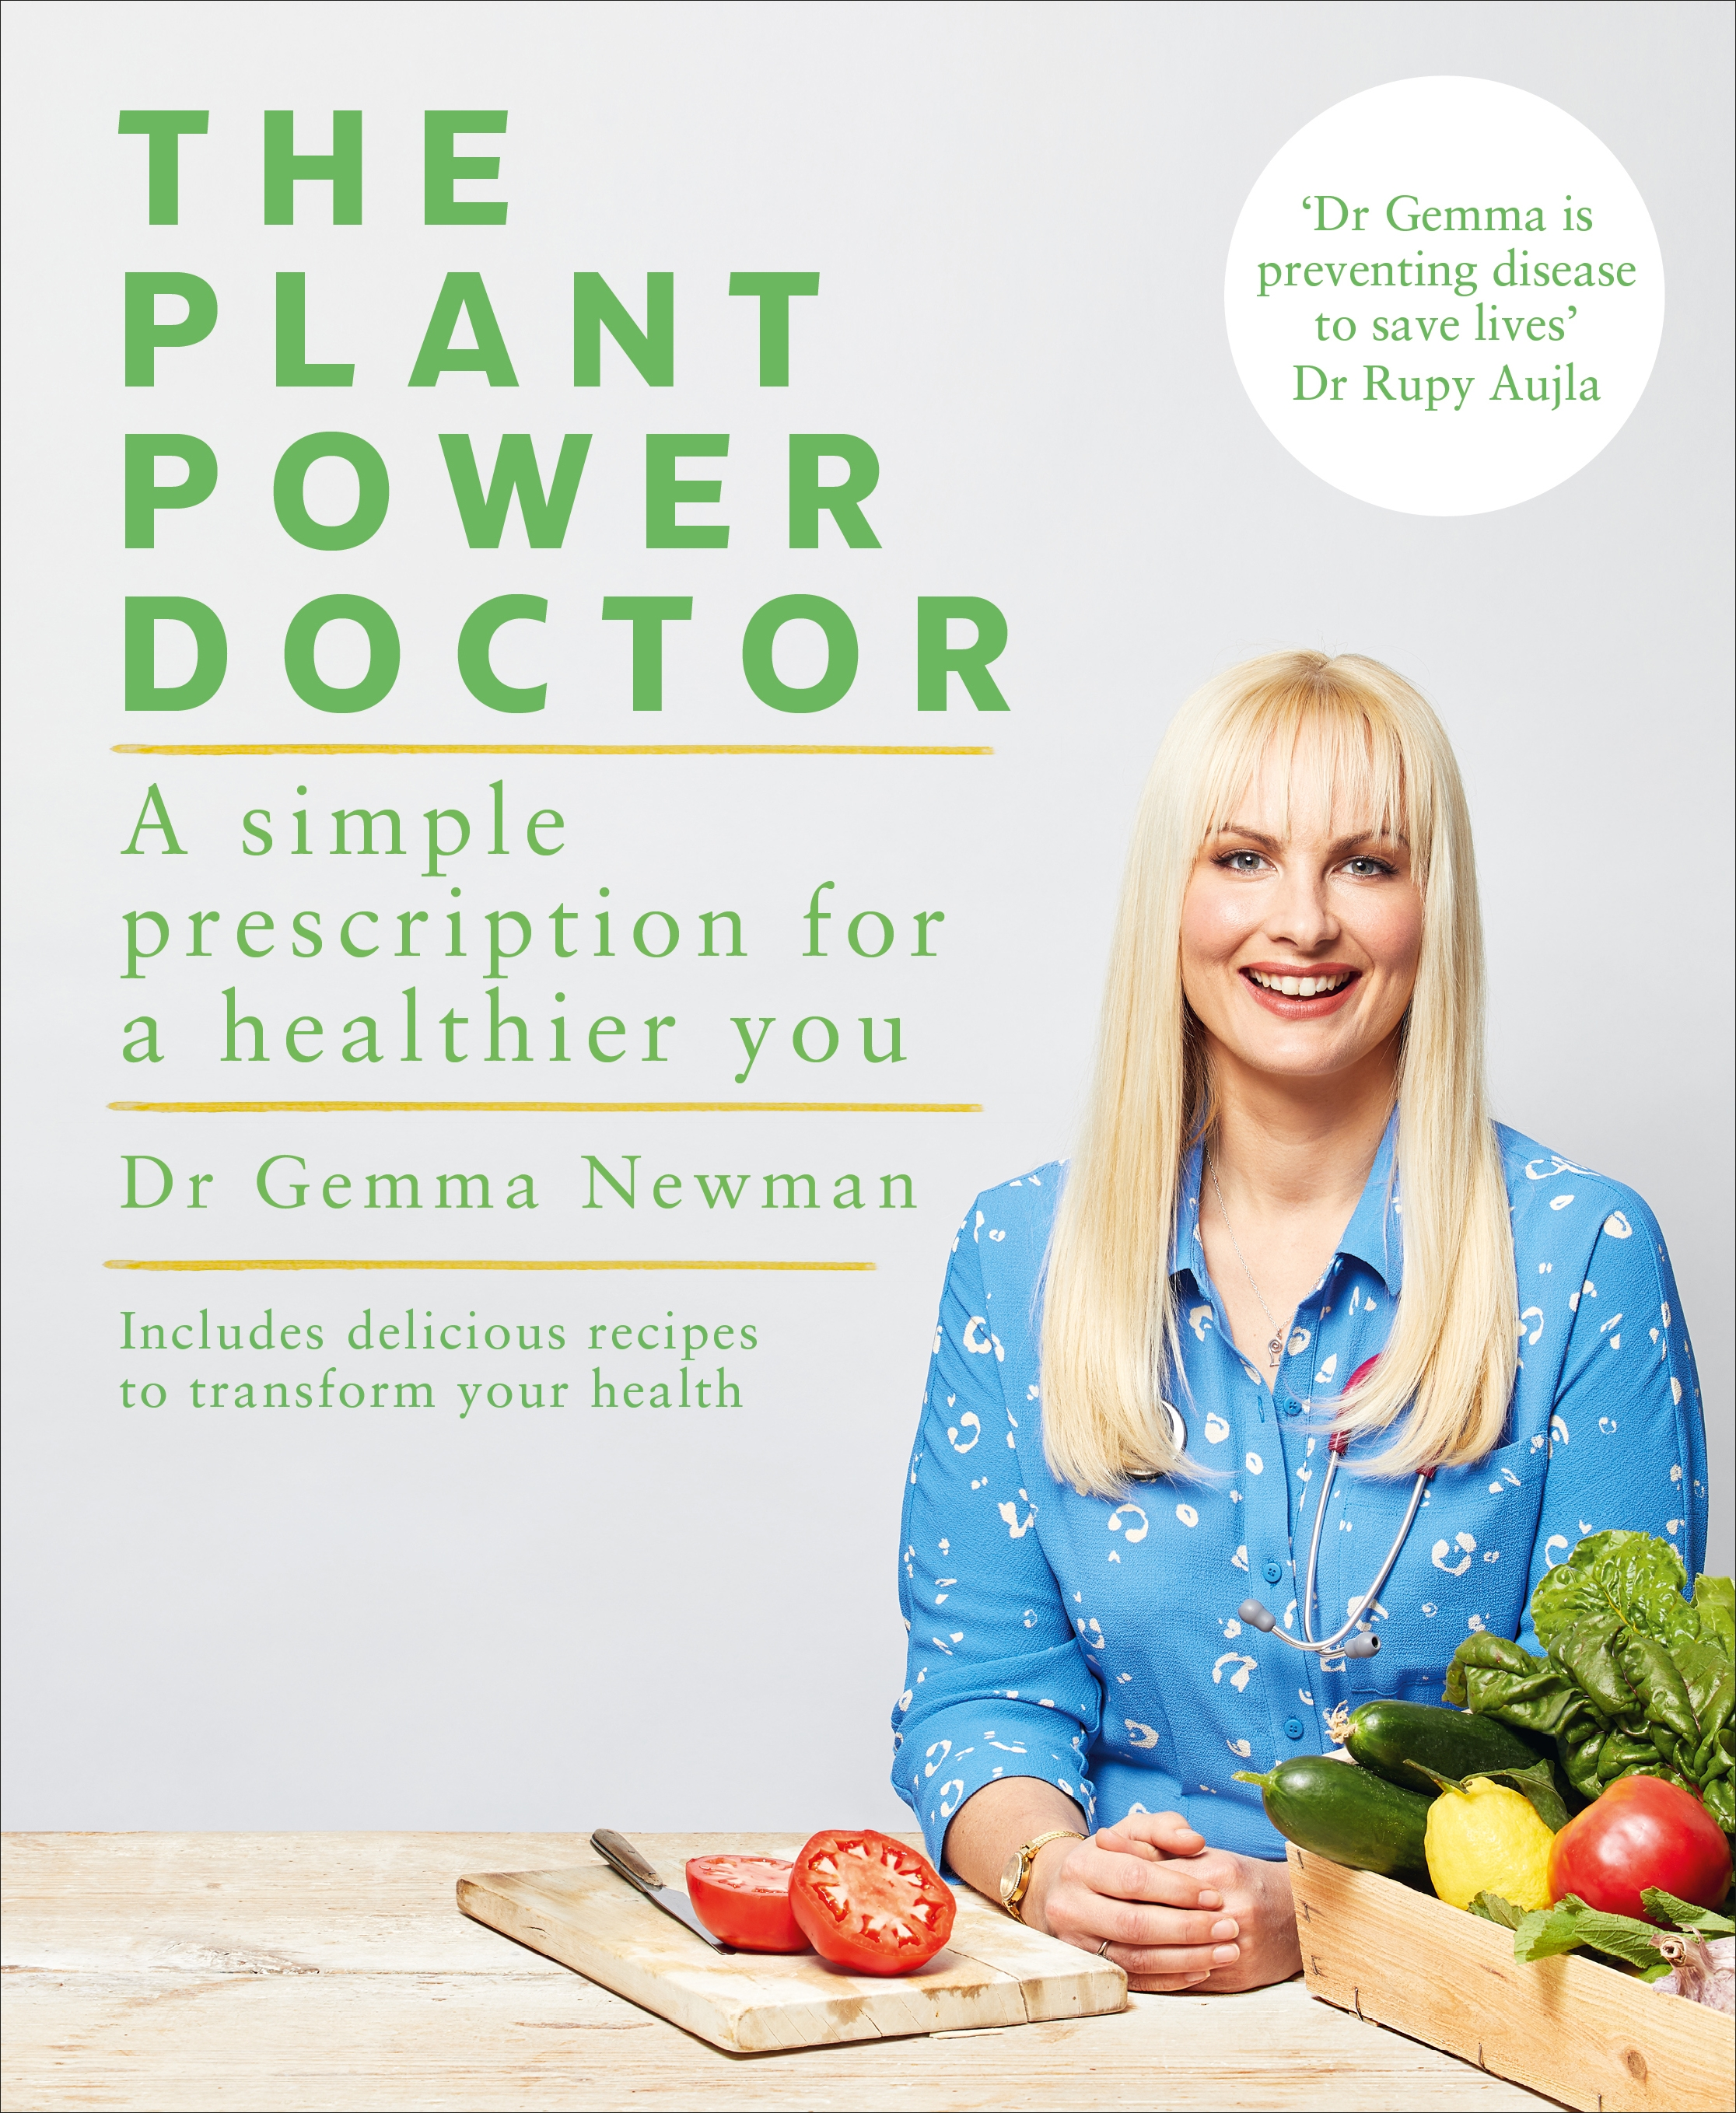 The Plant Power Doctor A simple prescription for a healthier you (Includes delicious recipes to transform your health)